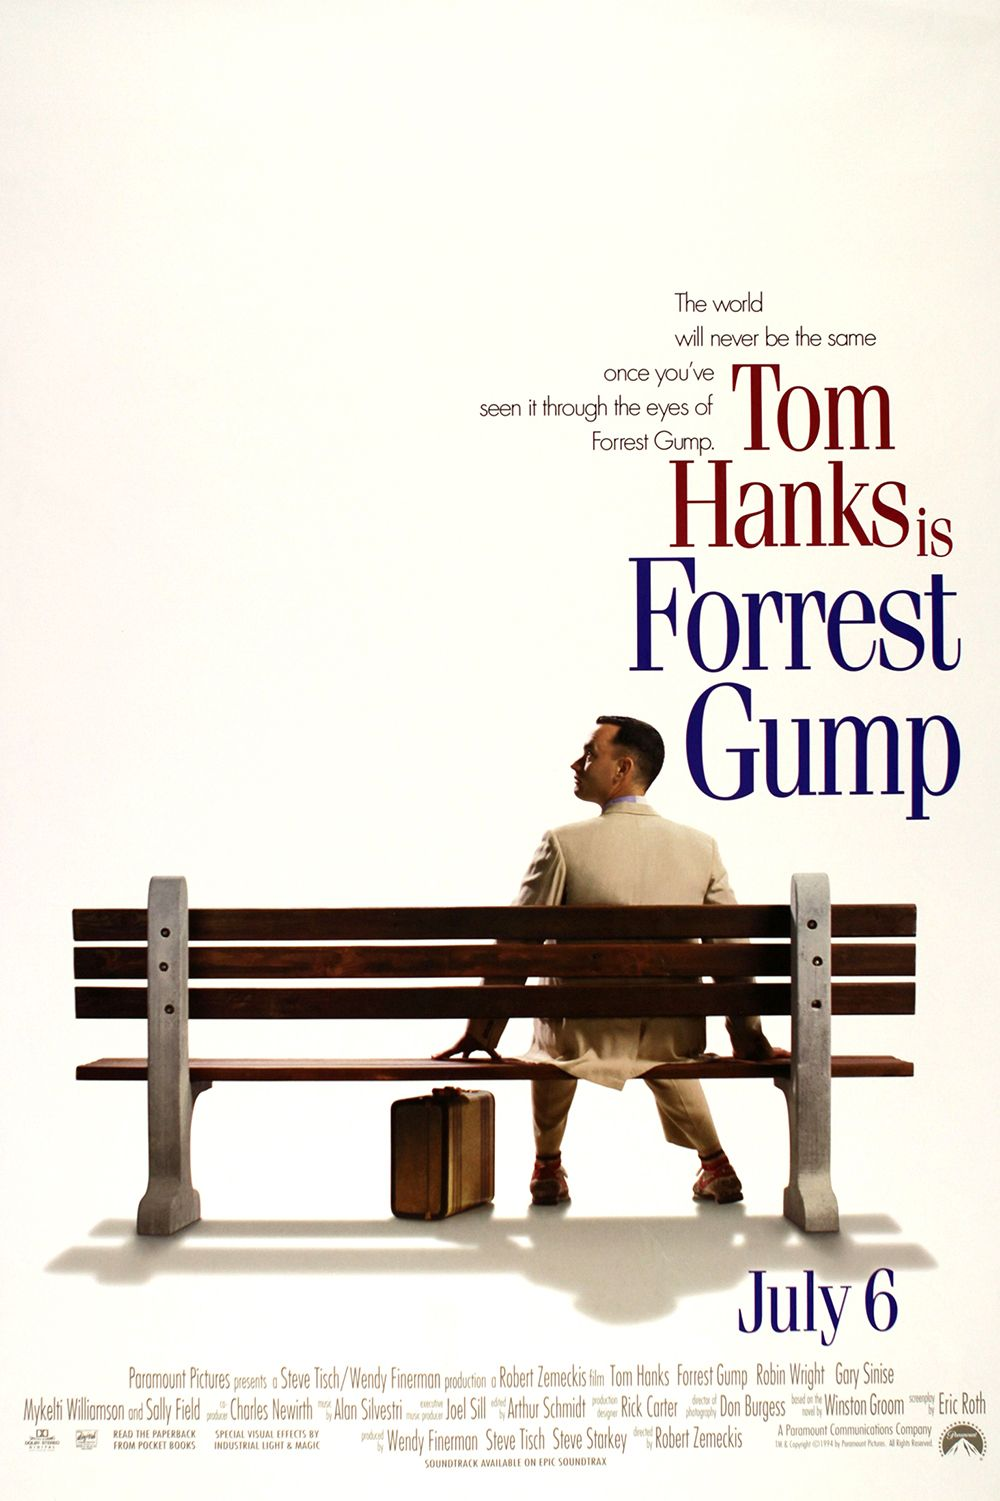 Forrest Gump (1994) This now-classic Best Picture winner takes audiences through the life of its titular character, the lovable—though slow—Forrest Gump (Tom Hanks). He runs across the country several times, meets Richard Nixon, serves in Vietnam, and teaches Elvis Presley to dance.